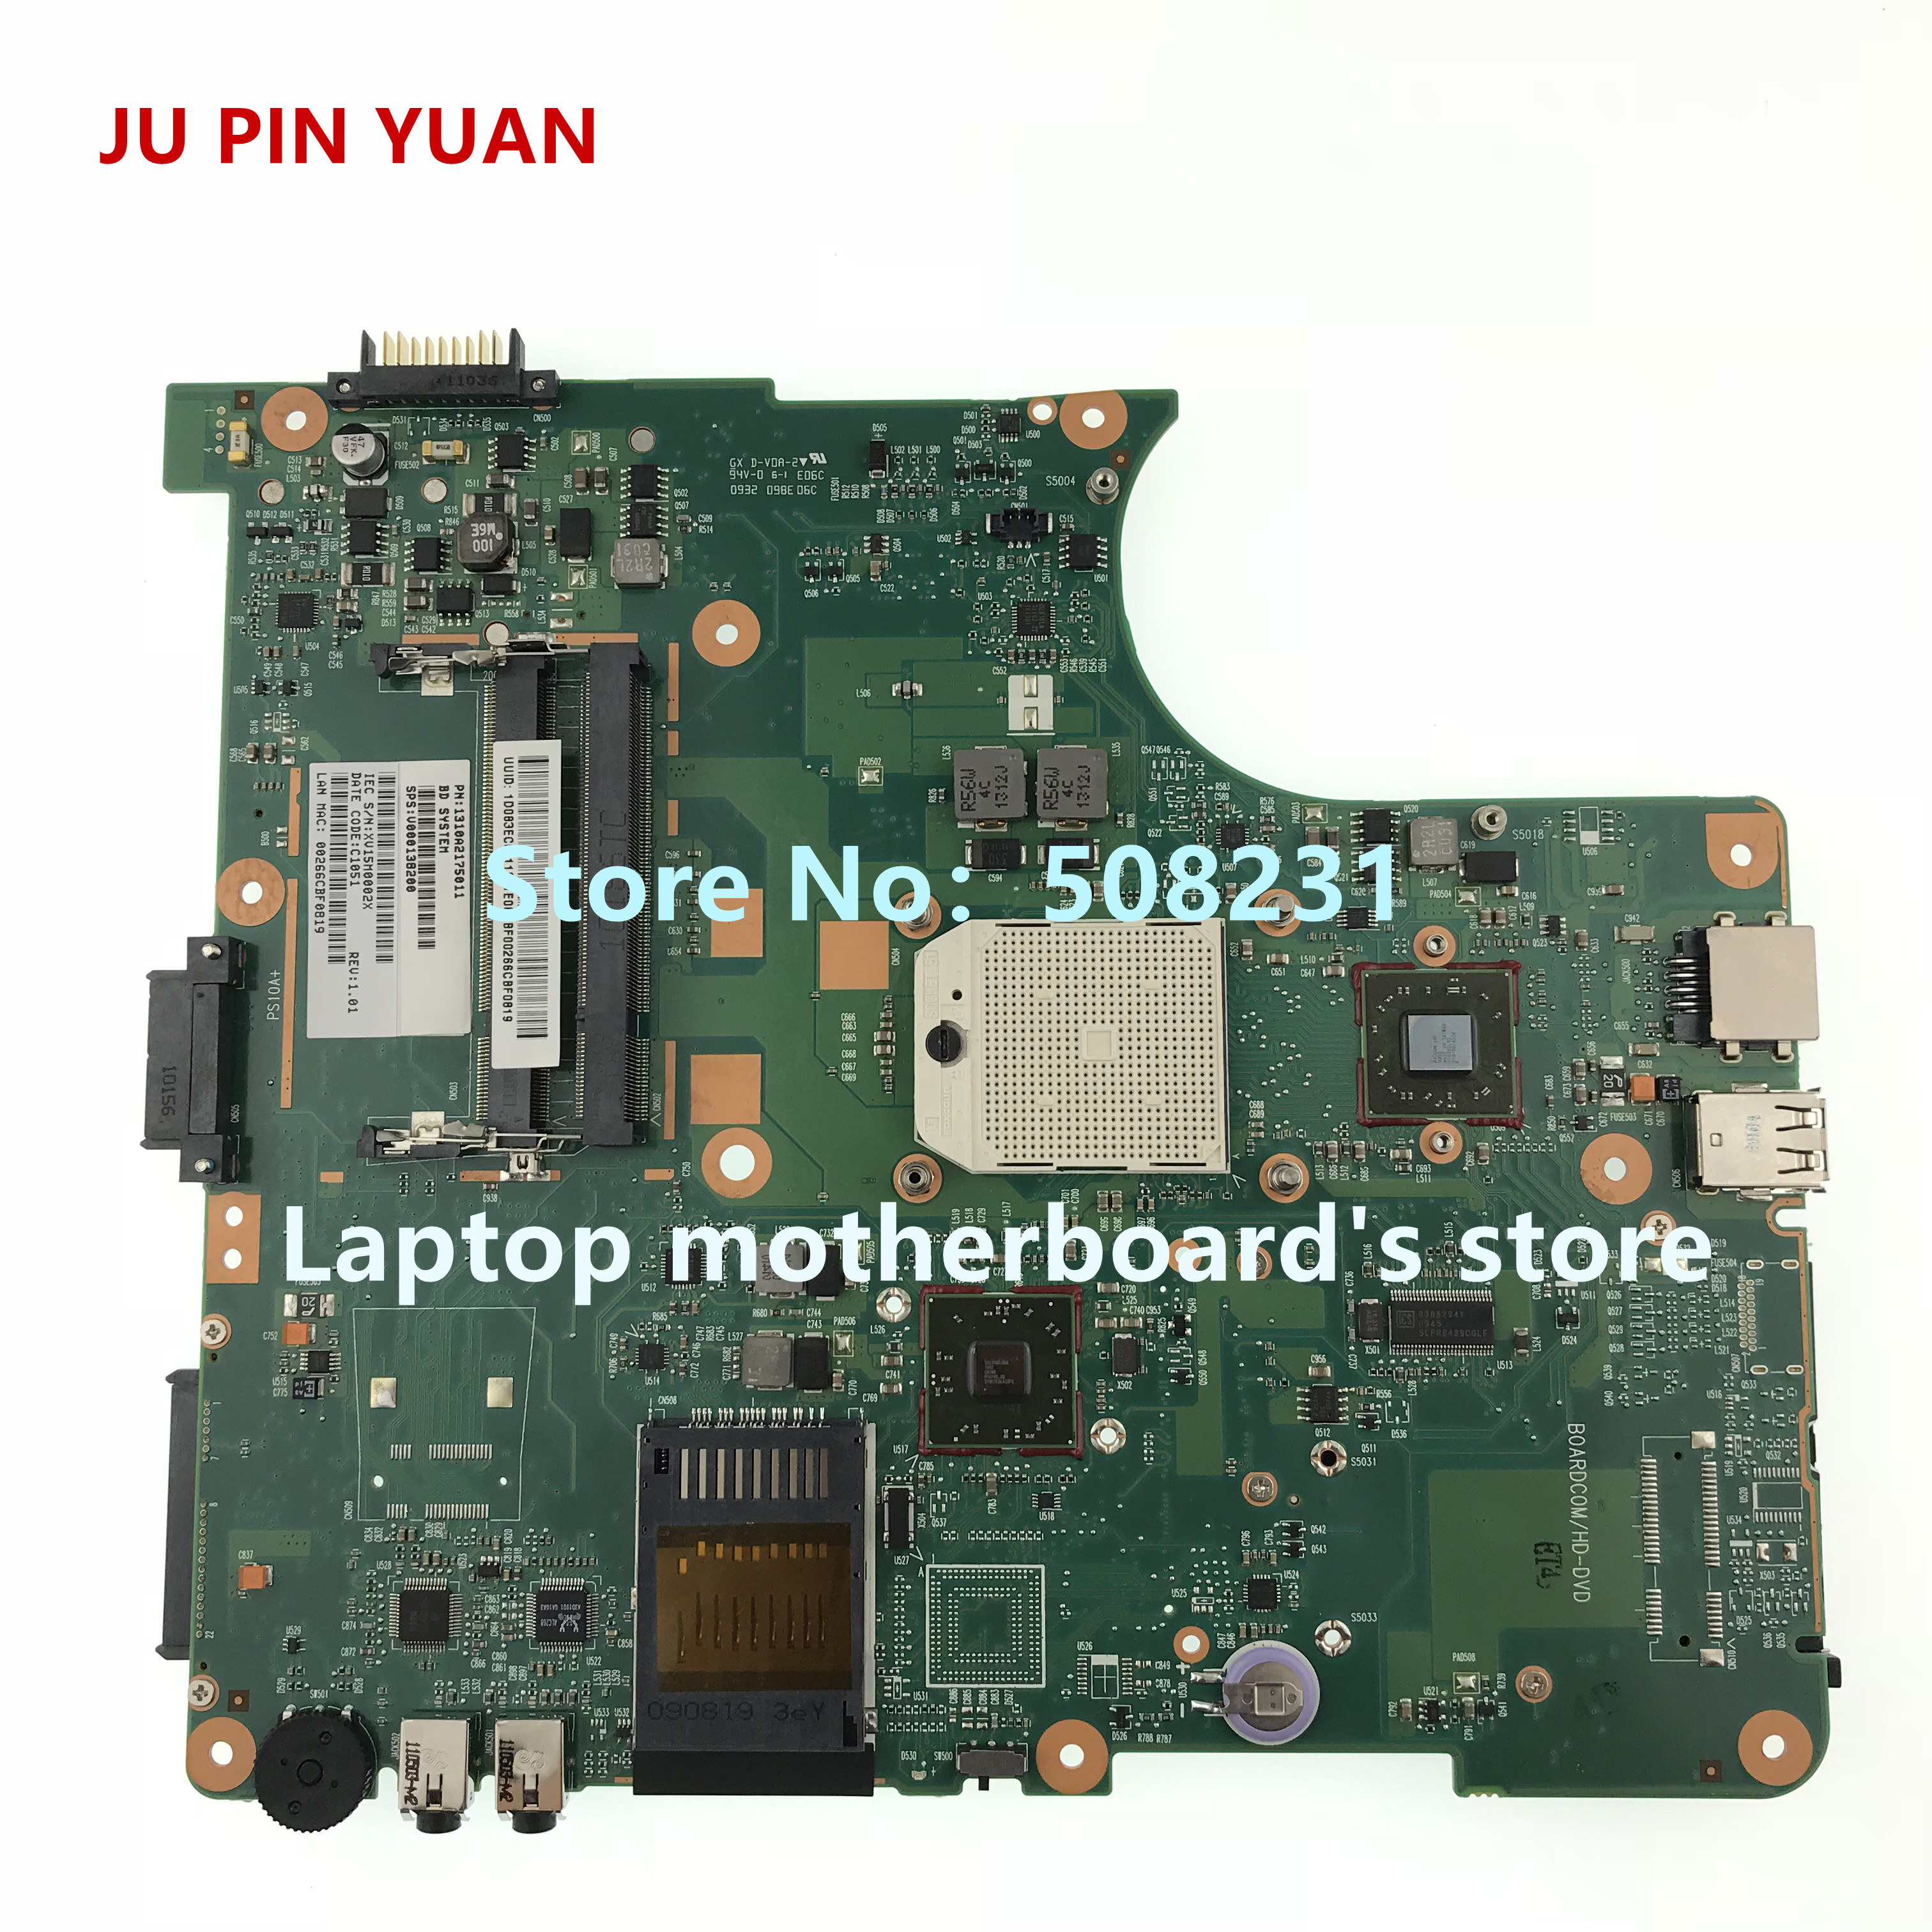 JU PIN YUAN V000138200 Mainboard For Toshiba Satellite L305D L300D Laptop Motherboard 6050A2175001 Fully Tested